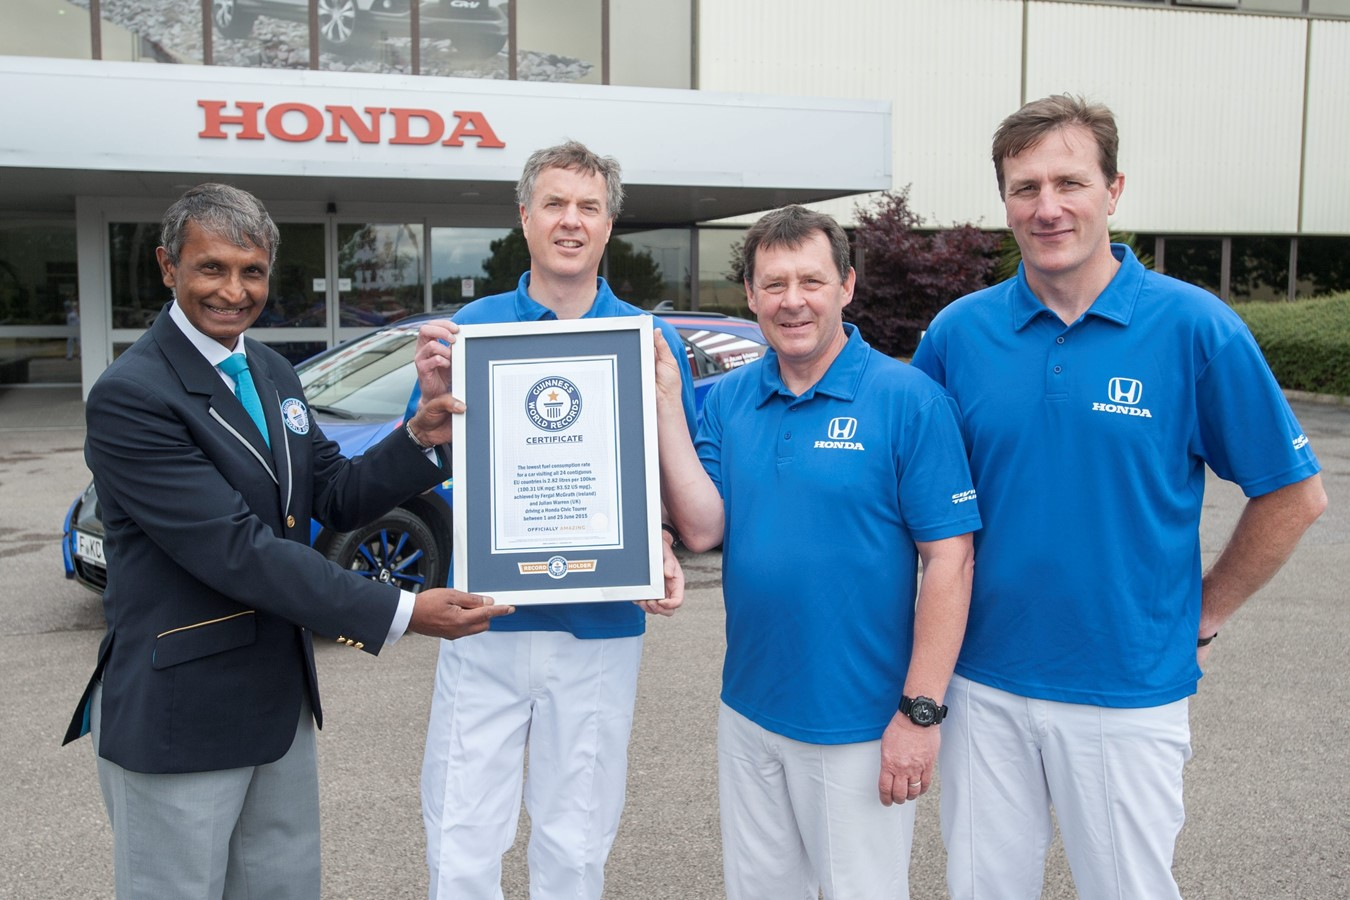 Honda sets new GUINNESS WORLD RECORDS™ title for fuel efficiency, averaging 2.82 litres per 100km (100.31mpg) in 13,498km (8,387 mile) drive across 24 EU countries.